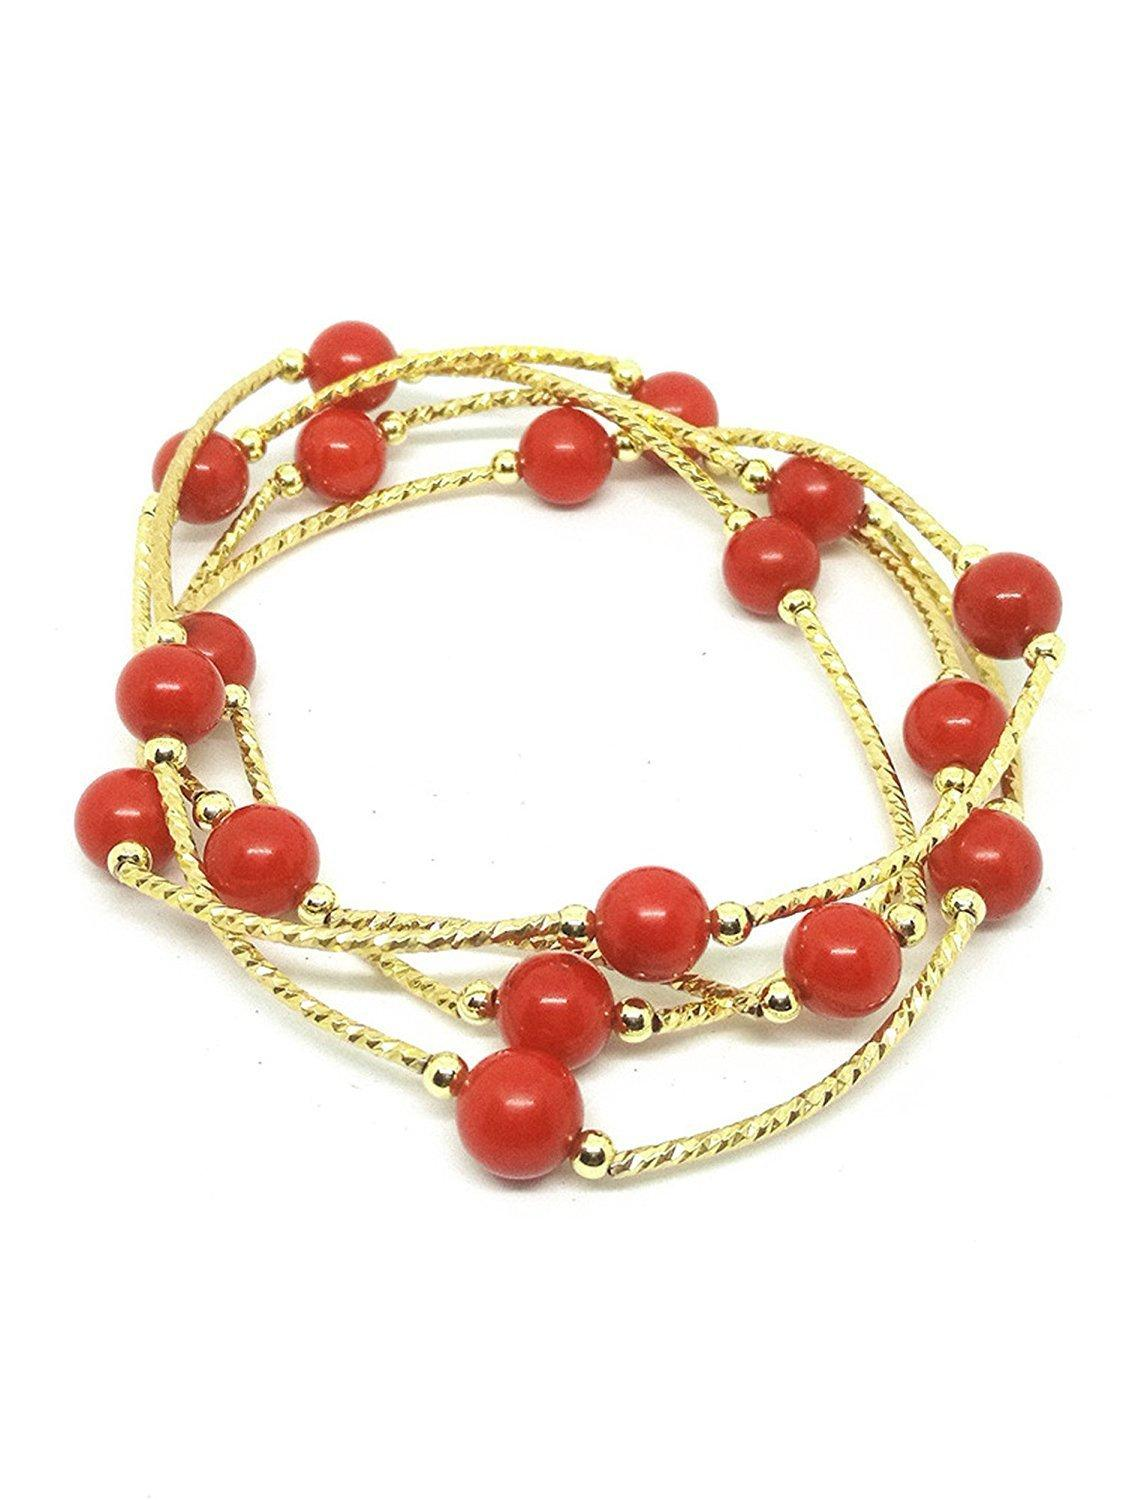 Natural S925 Gold Red Coral Beads Bracelet Necklace Gemstone Jewelry